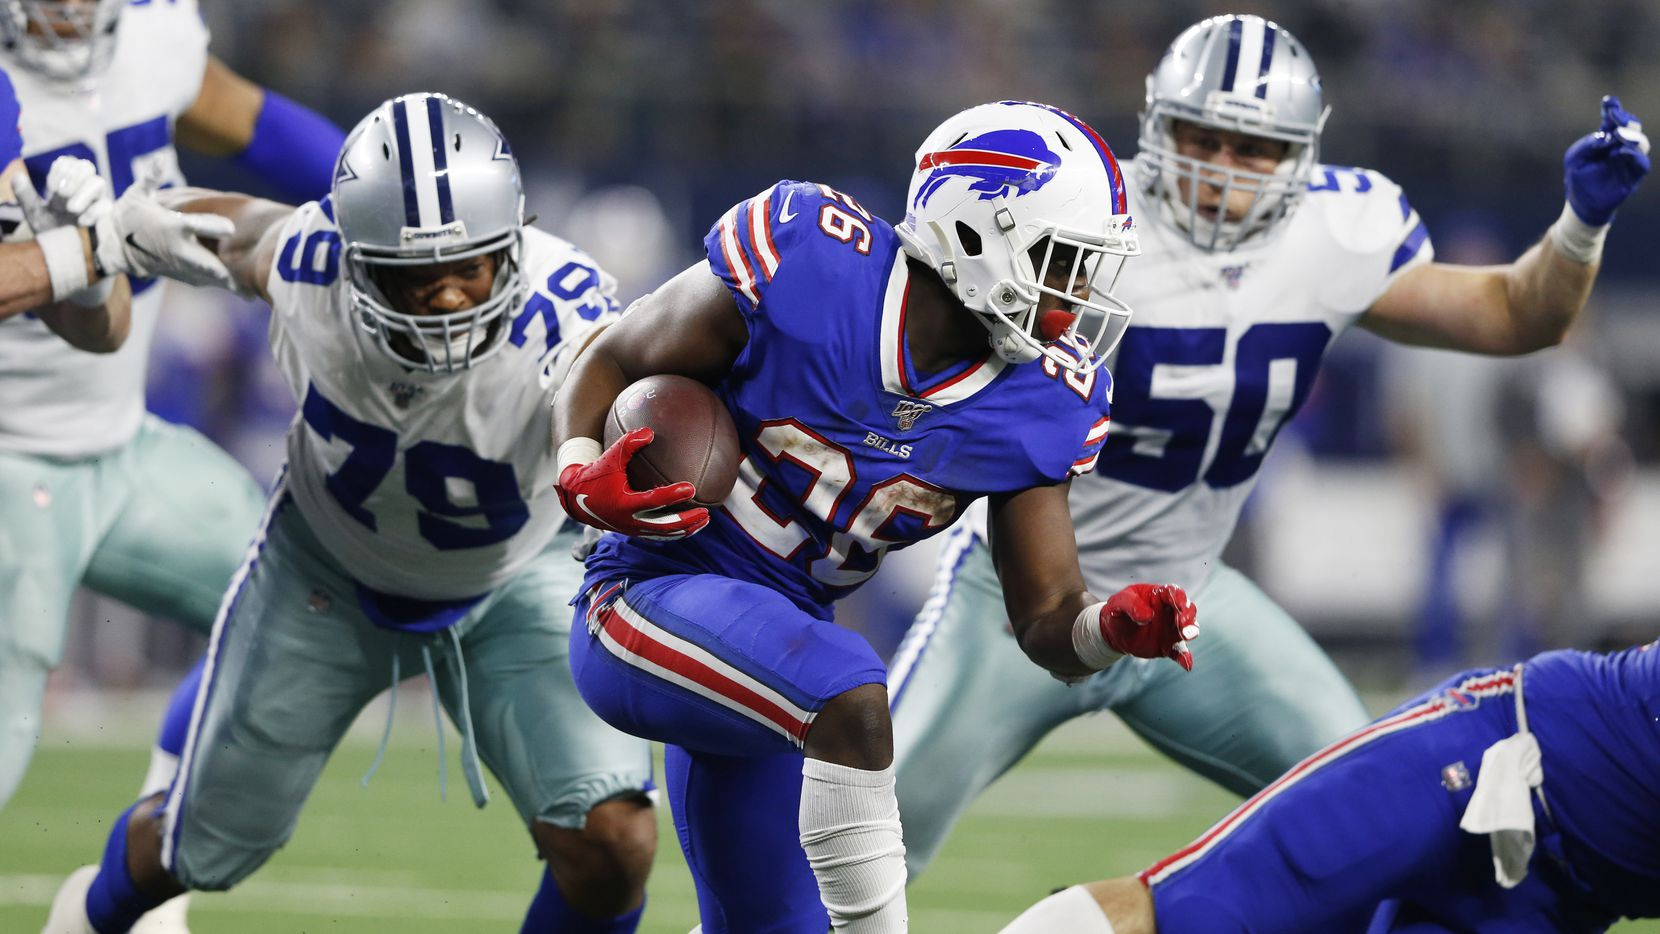 Buffalo Bills running back Devin Singletary (26) runs up the field as Dallas Cowboys defensive end Michael Bennett (79) and Dallas Cowboys outside linebacker Sean Lee (50) close in on him during the second half of play at AT&T Stadium in Arlington, Texas on Thursday, November 28, 2019. The Buffalo Bills defeated the Dallas Cowboys 26-15. (Vernon Bryant/The Dallas Morning News)